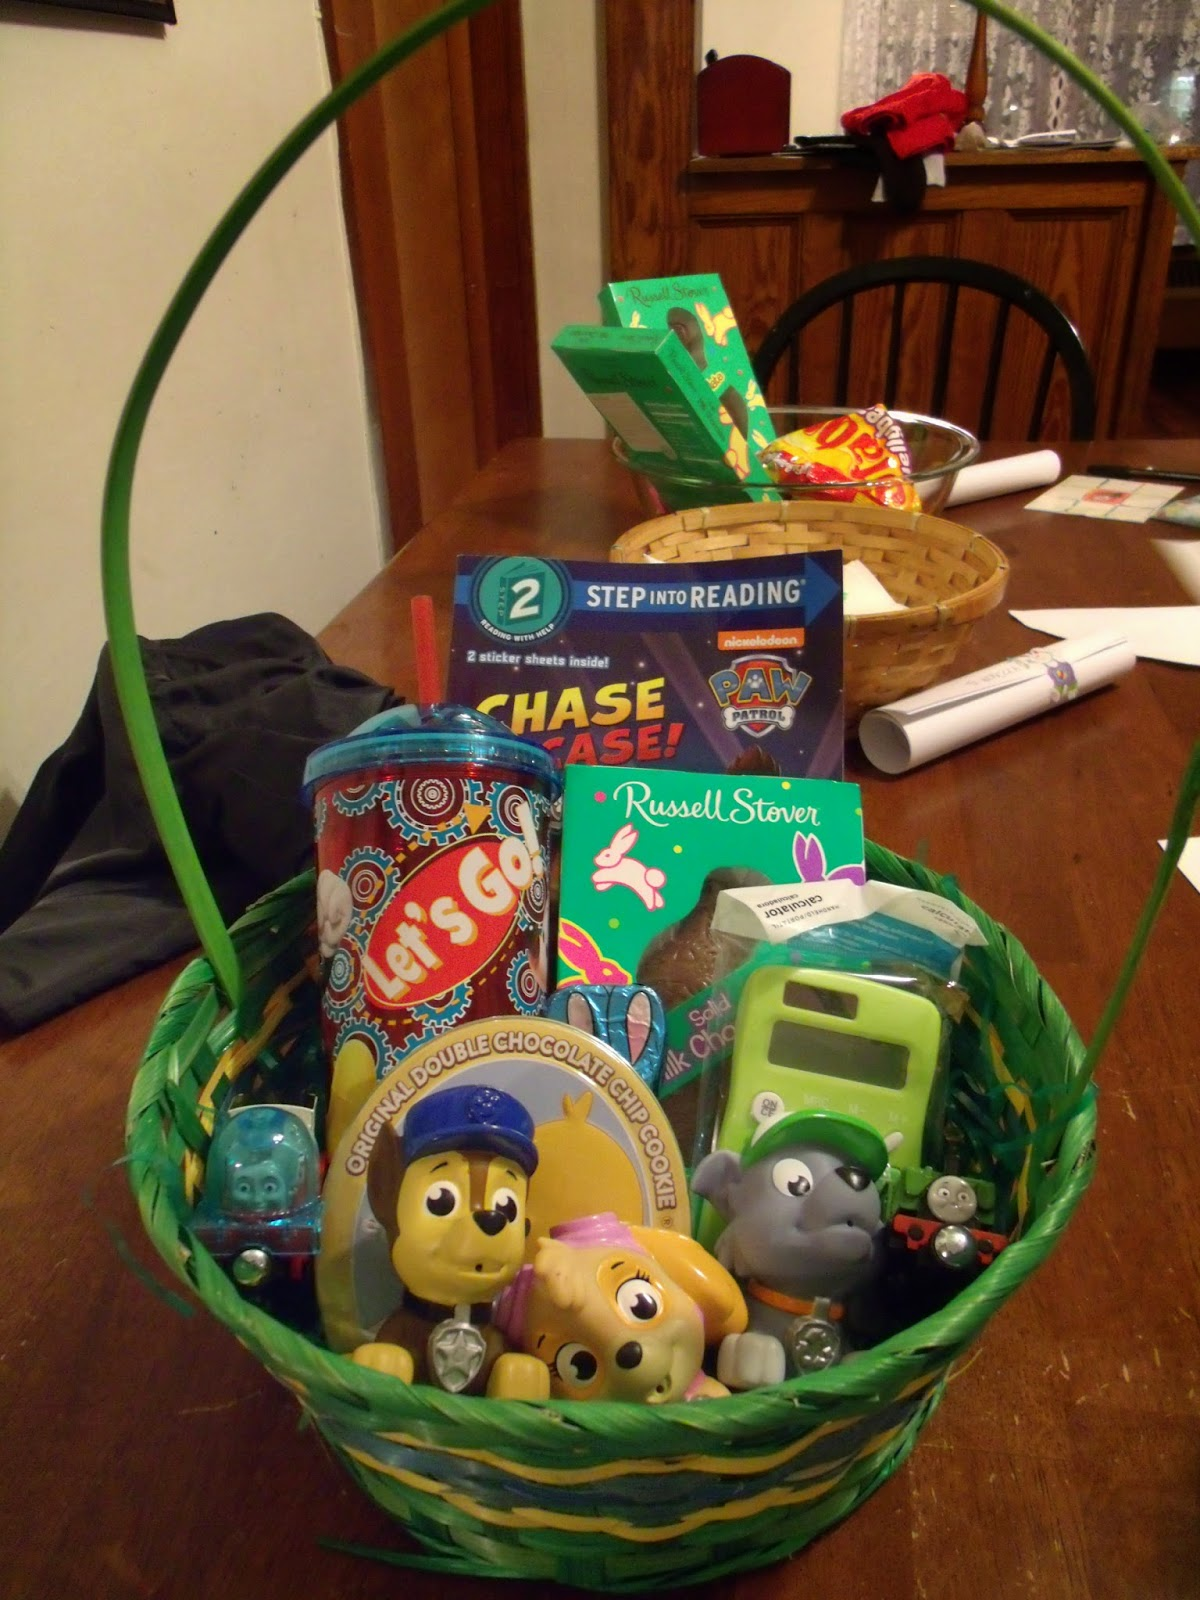 Sunday easter baskets with the kids and dinner with the grandparents negle Choice Image